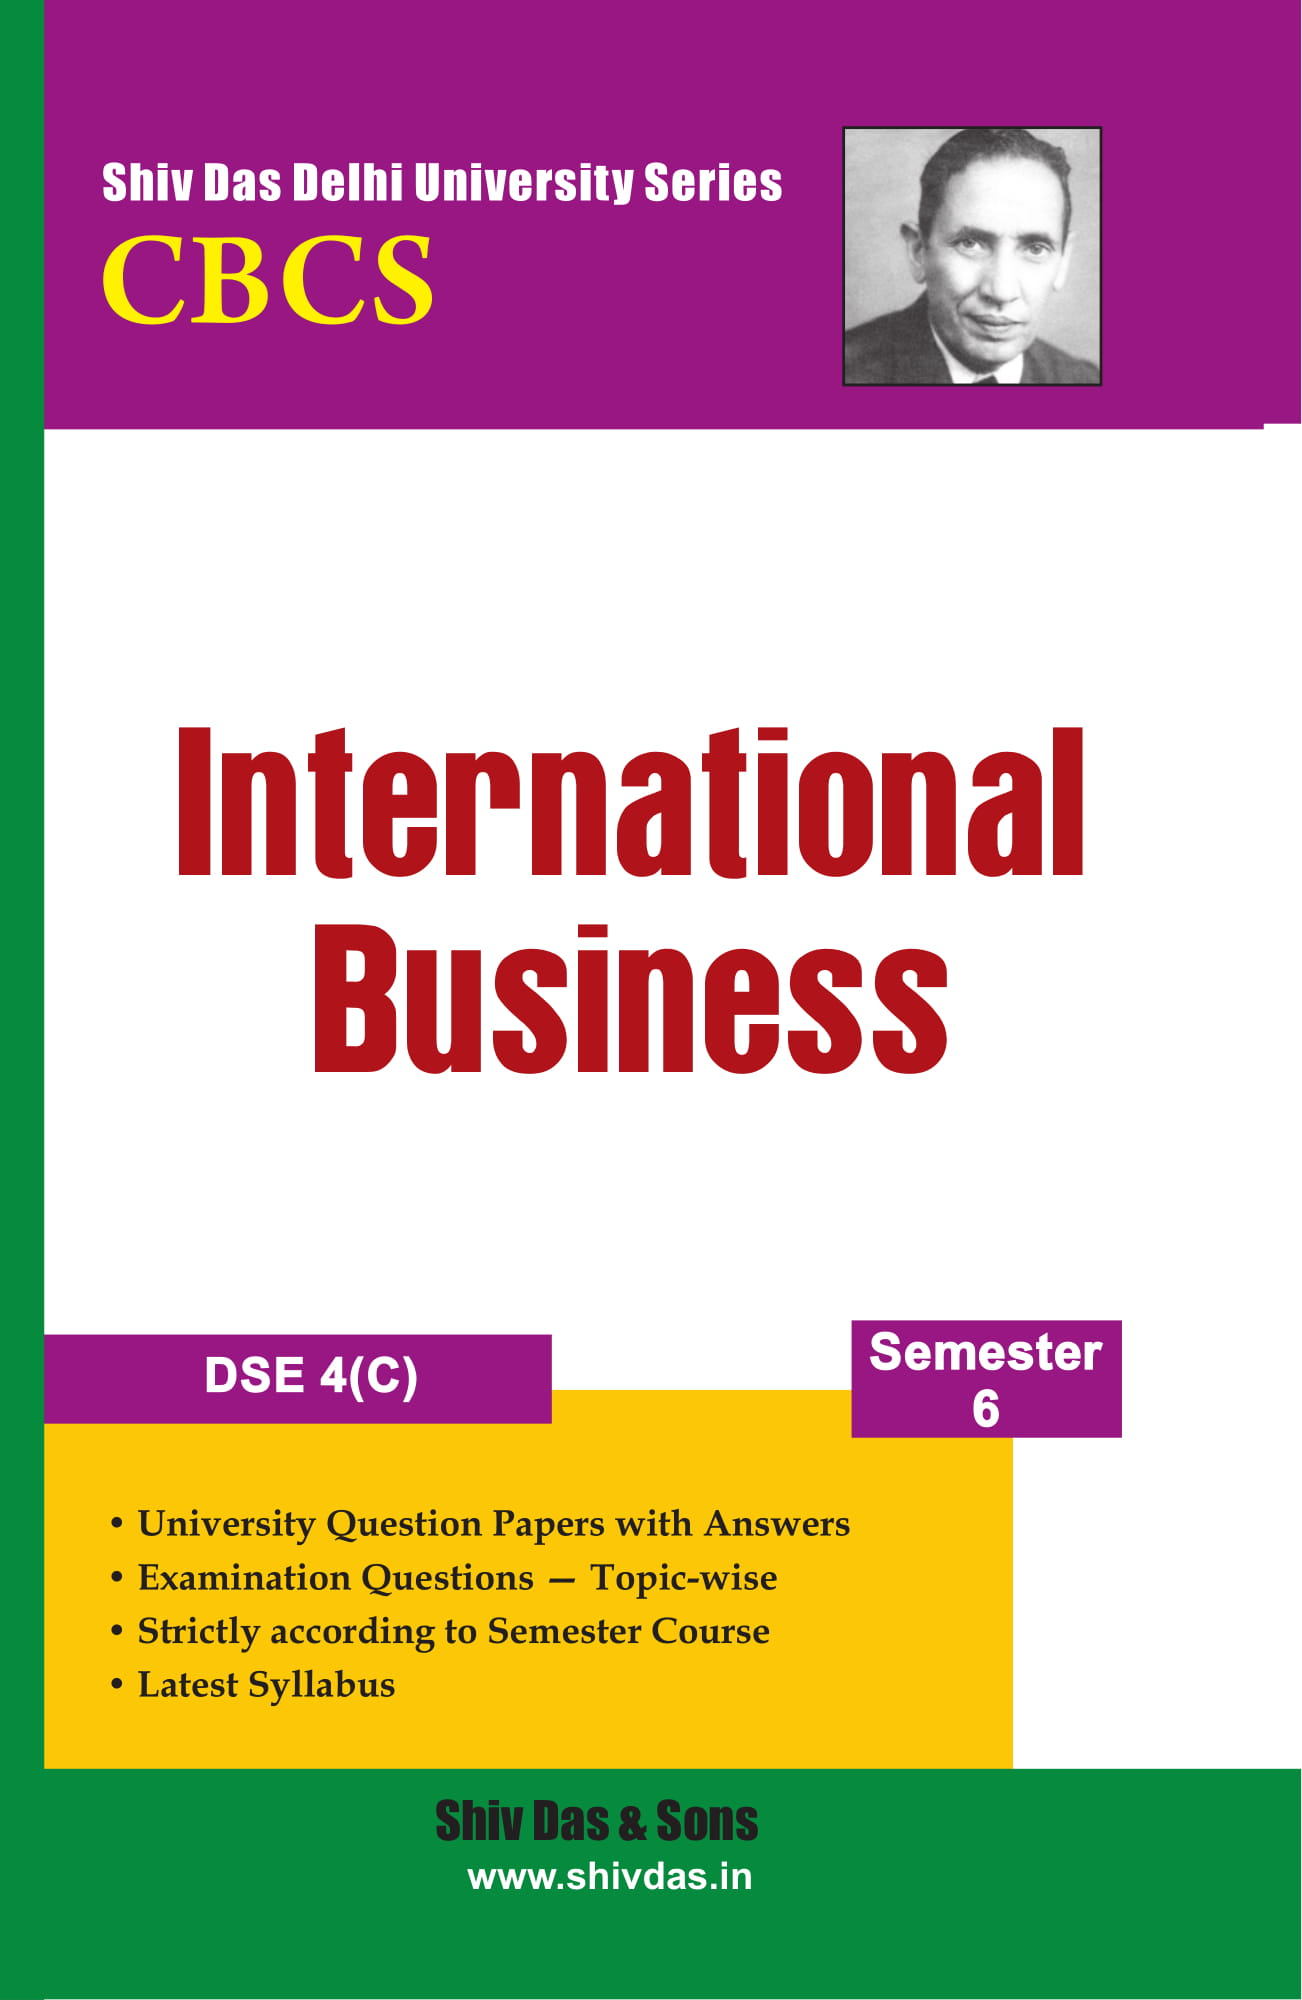 International Business for B.Com Hons  Semester 6